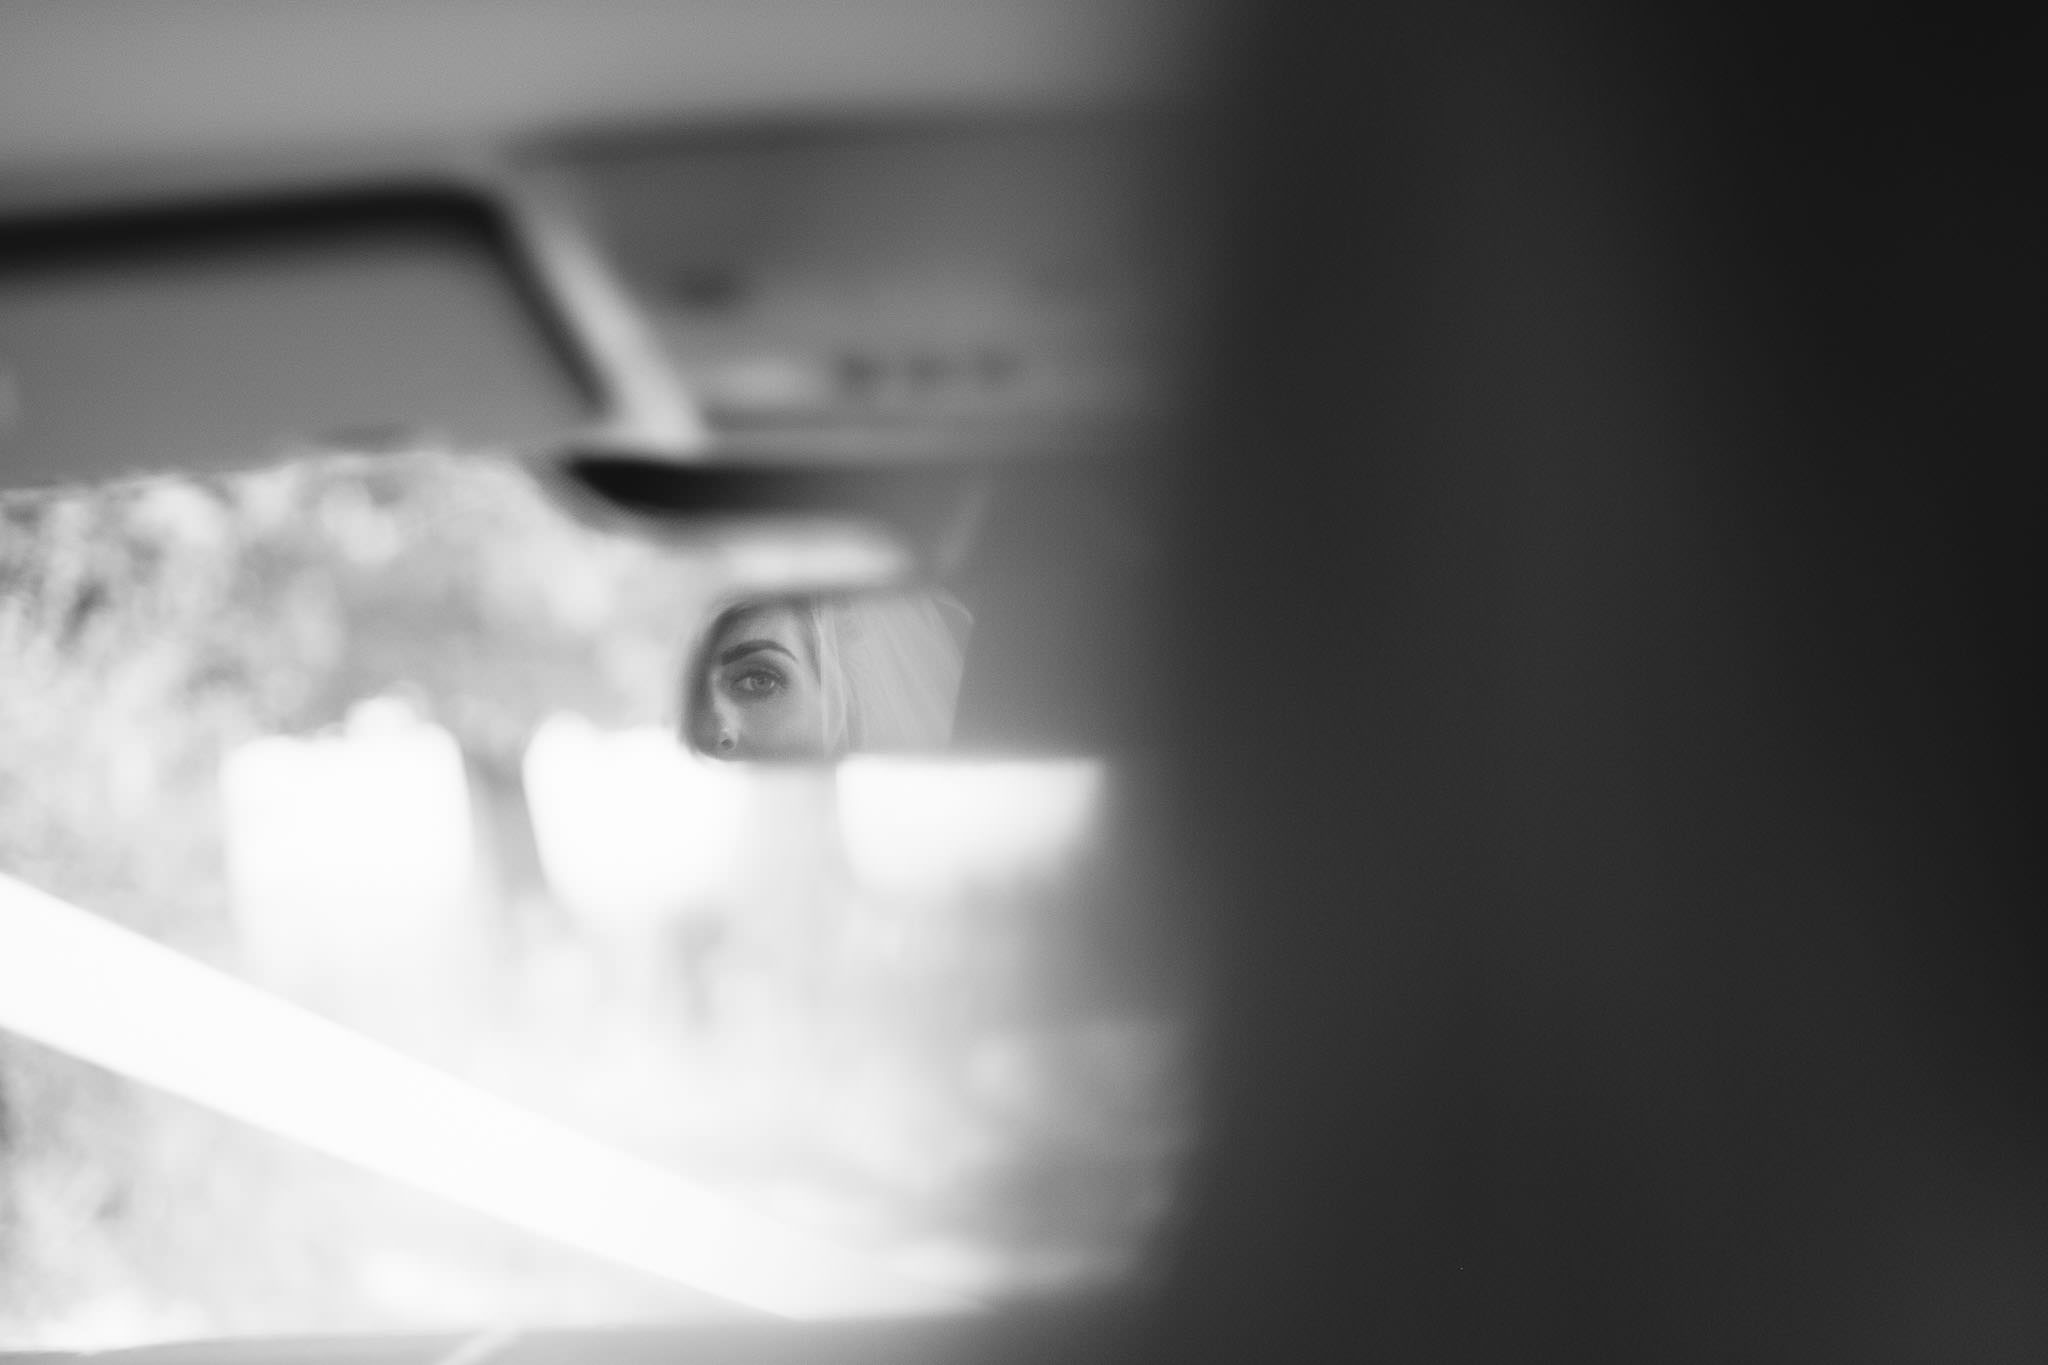 A black and white photo of the bride's eye reflected in the car mirror